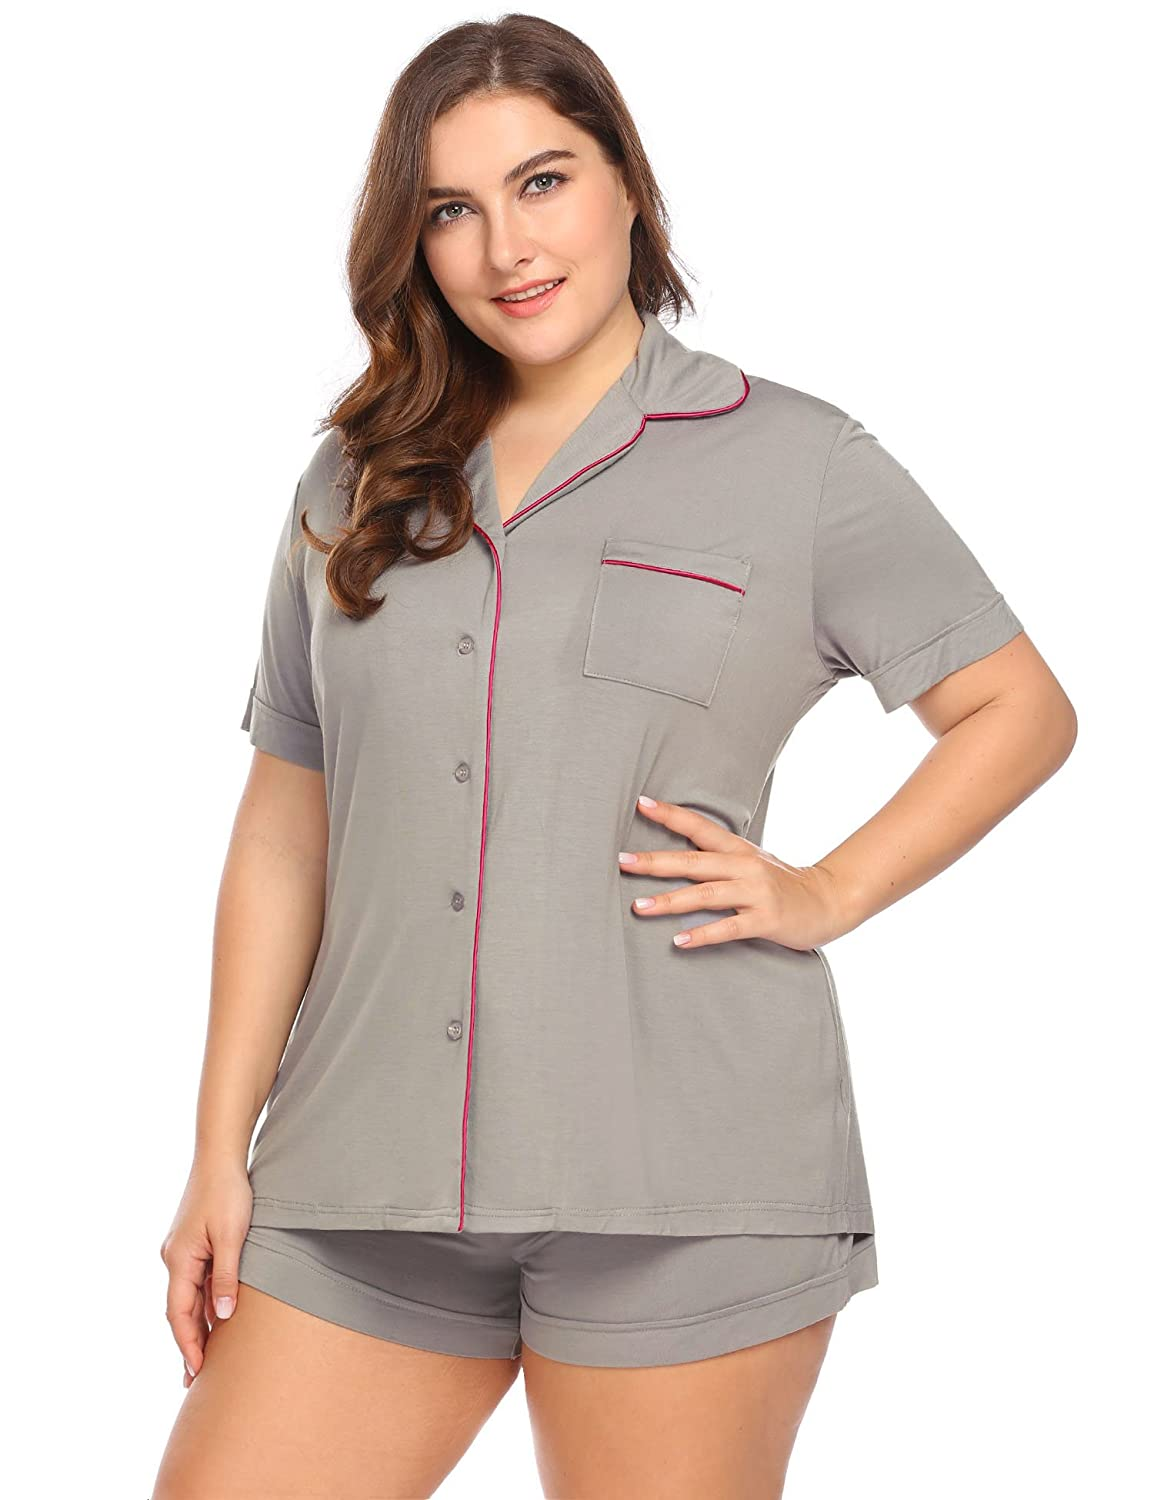 IN VOLAND Women s Plus Size Sleepwear Short Sleeve Pajama Set with PJ  Shorts 16W-24W at Amazon Women s Clothing store  795ee6aa3